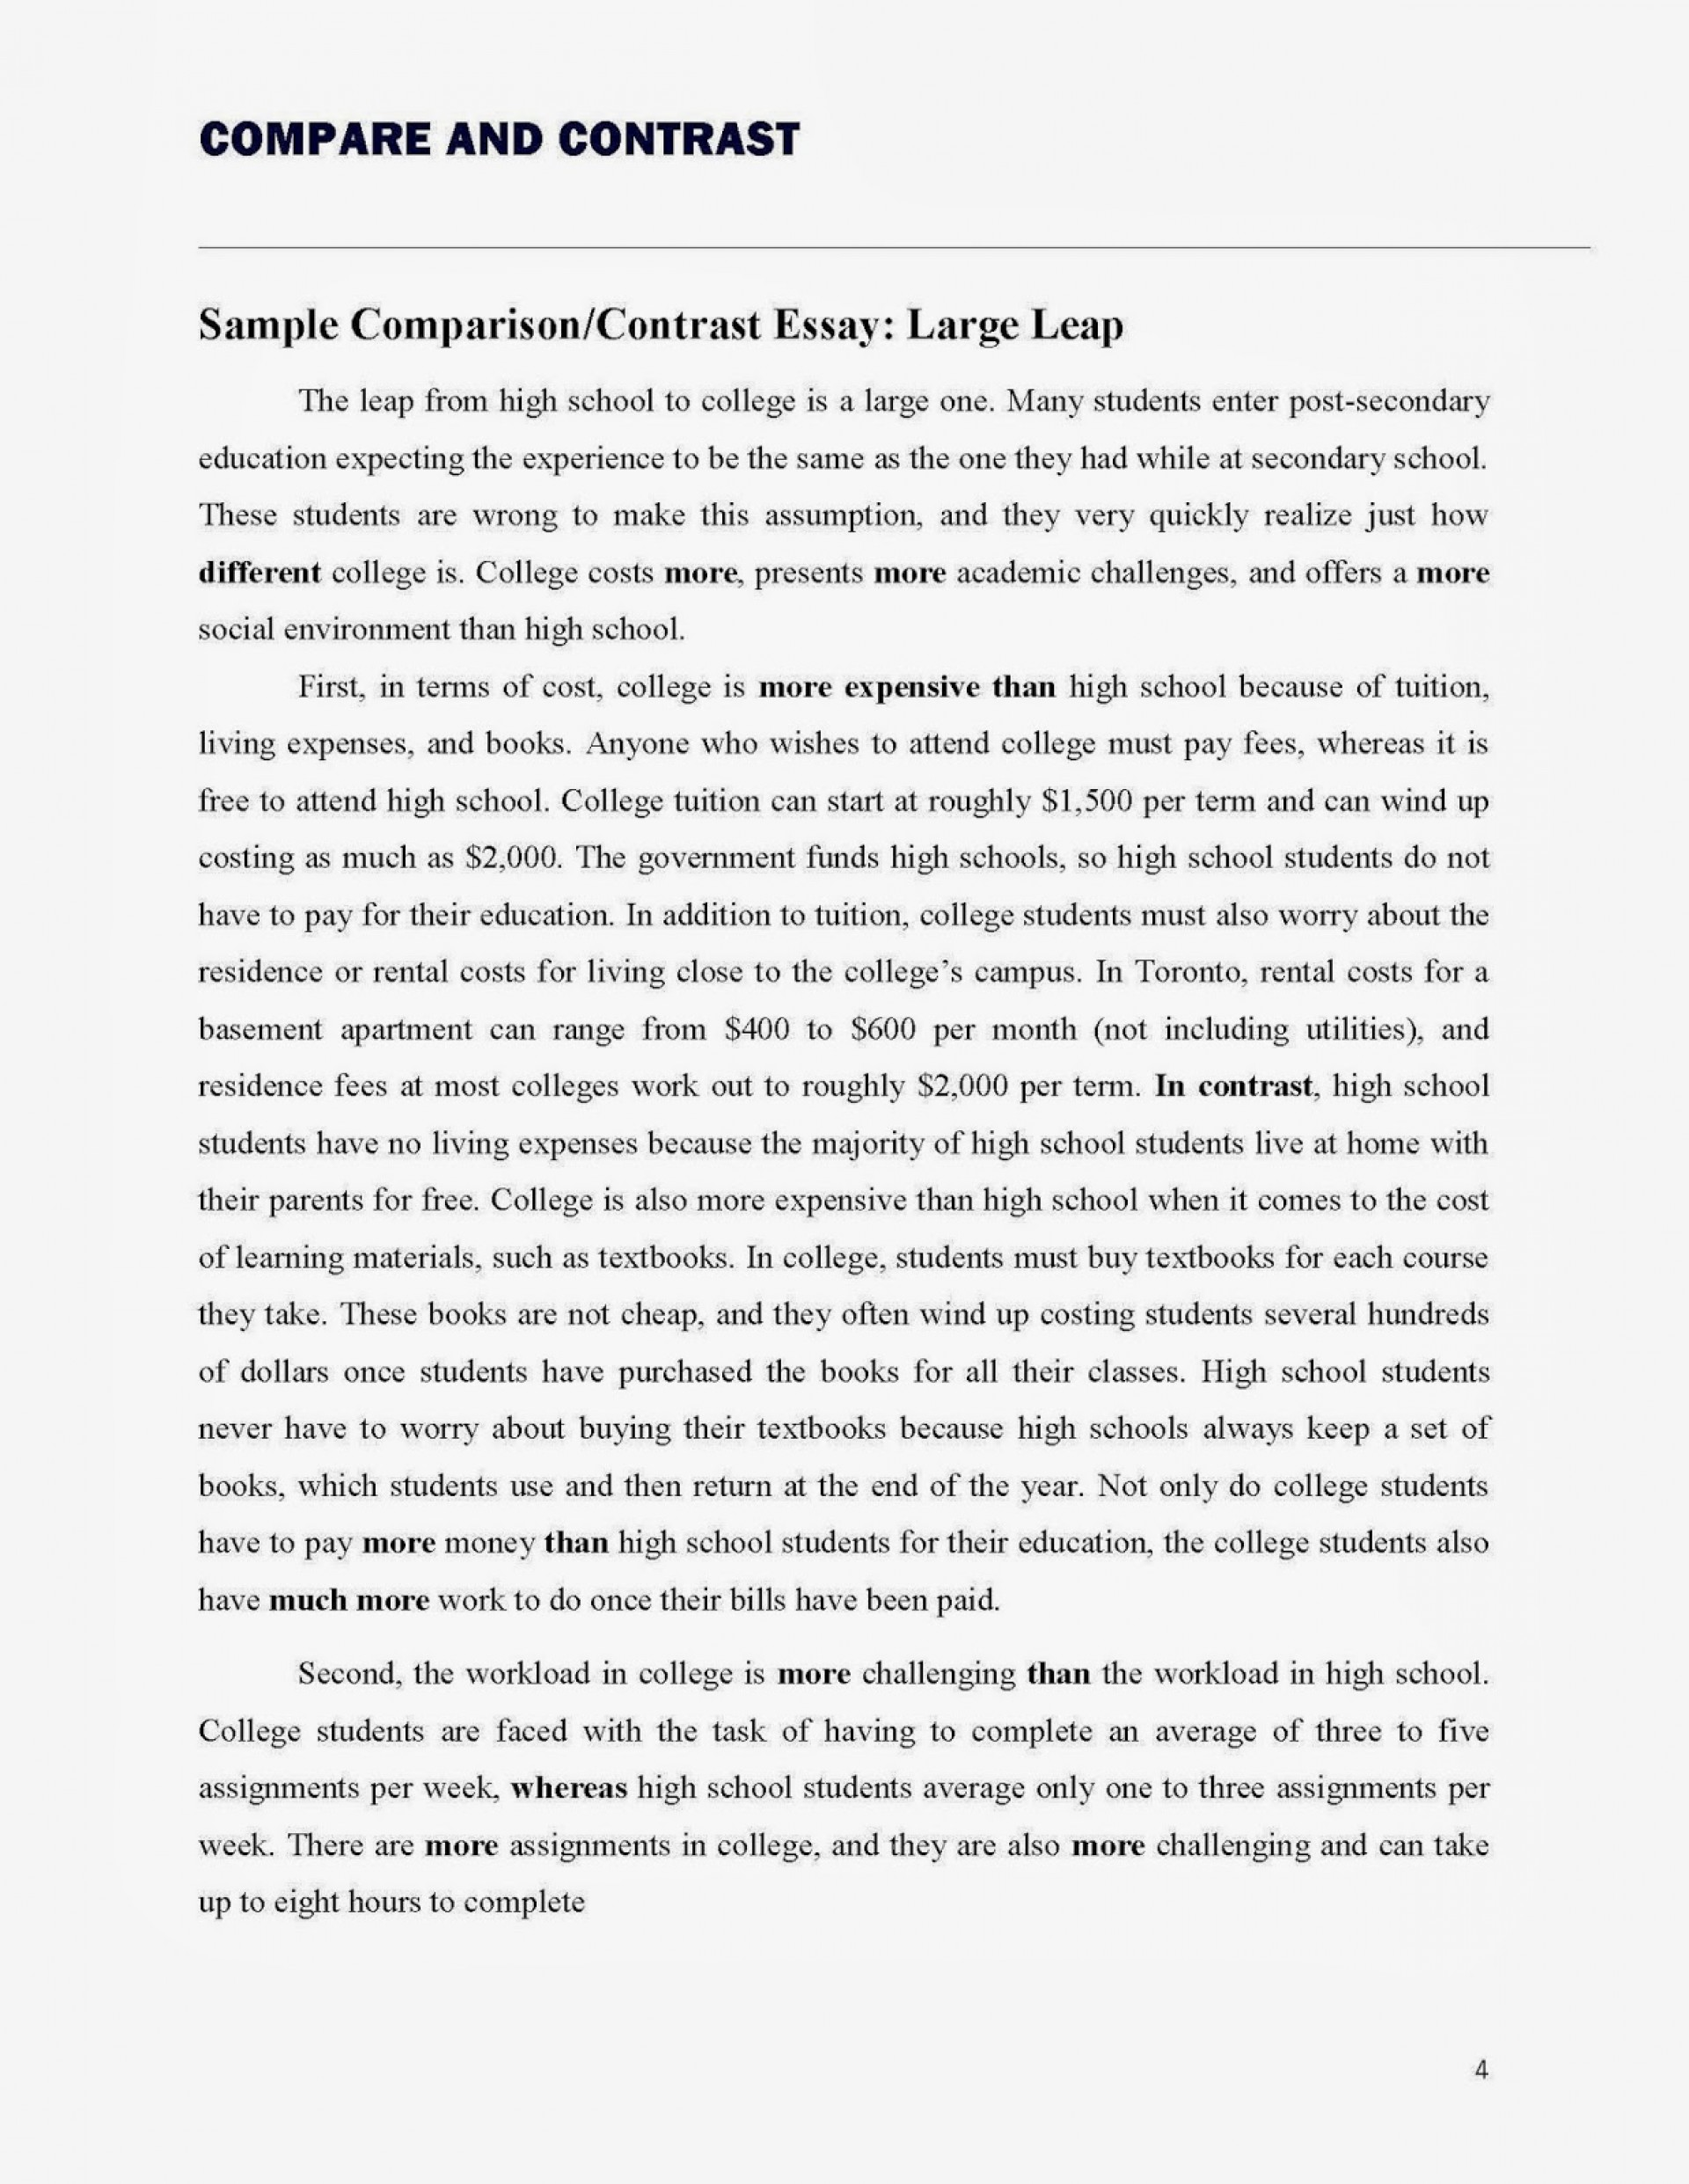 009 Essay Example Peace Compare2band2bcontrast2bessay Page 4 Rare World In Simple English Swackhamer Contest 1920